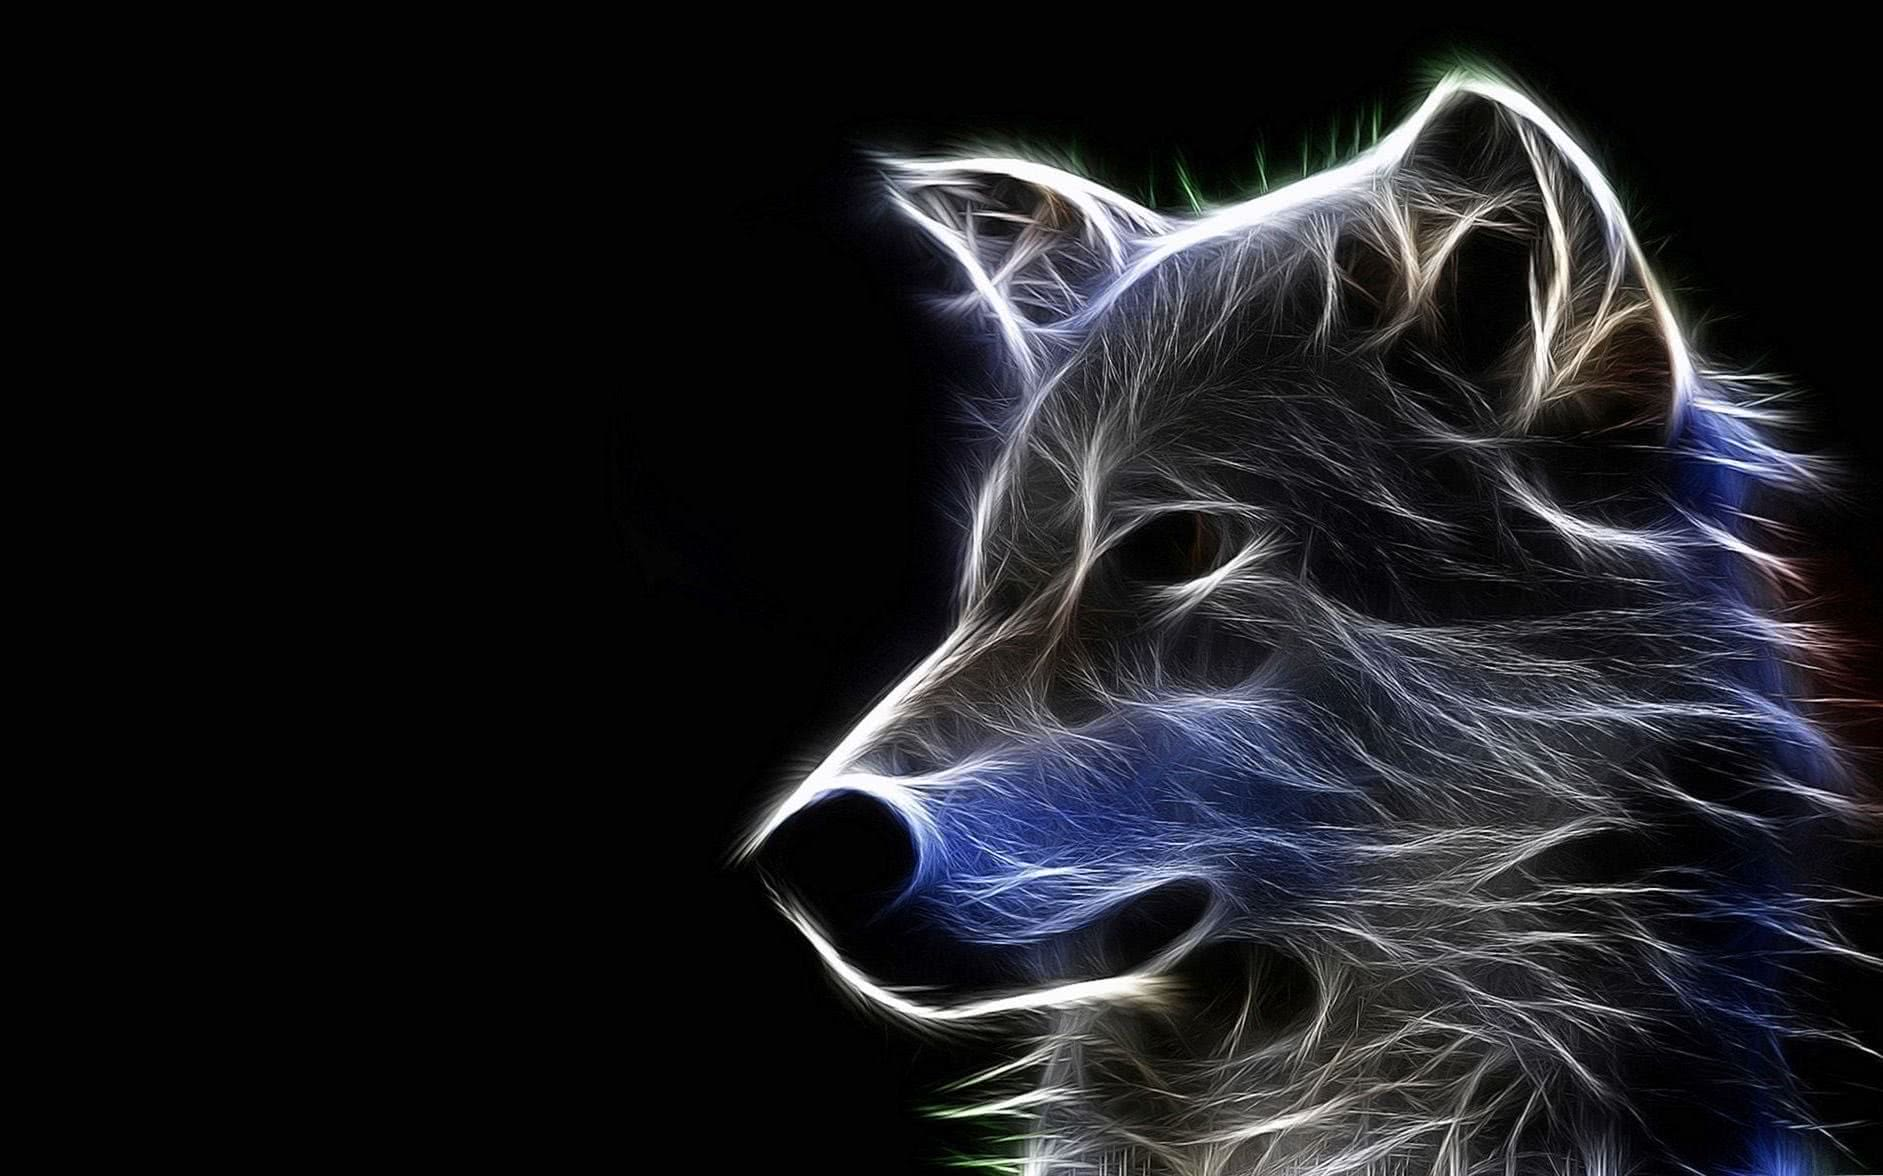 Wallpaper HD Cool Wolf